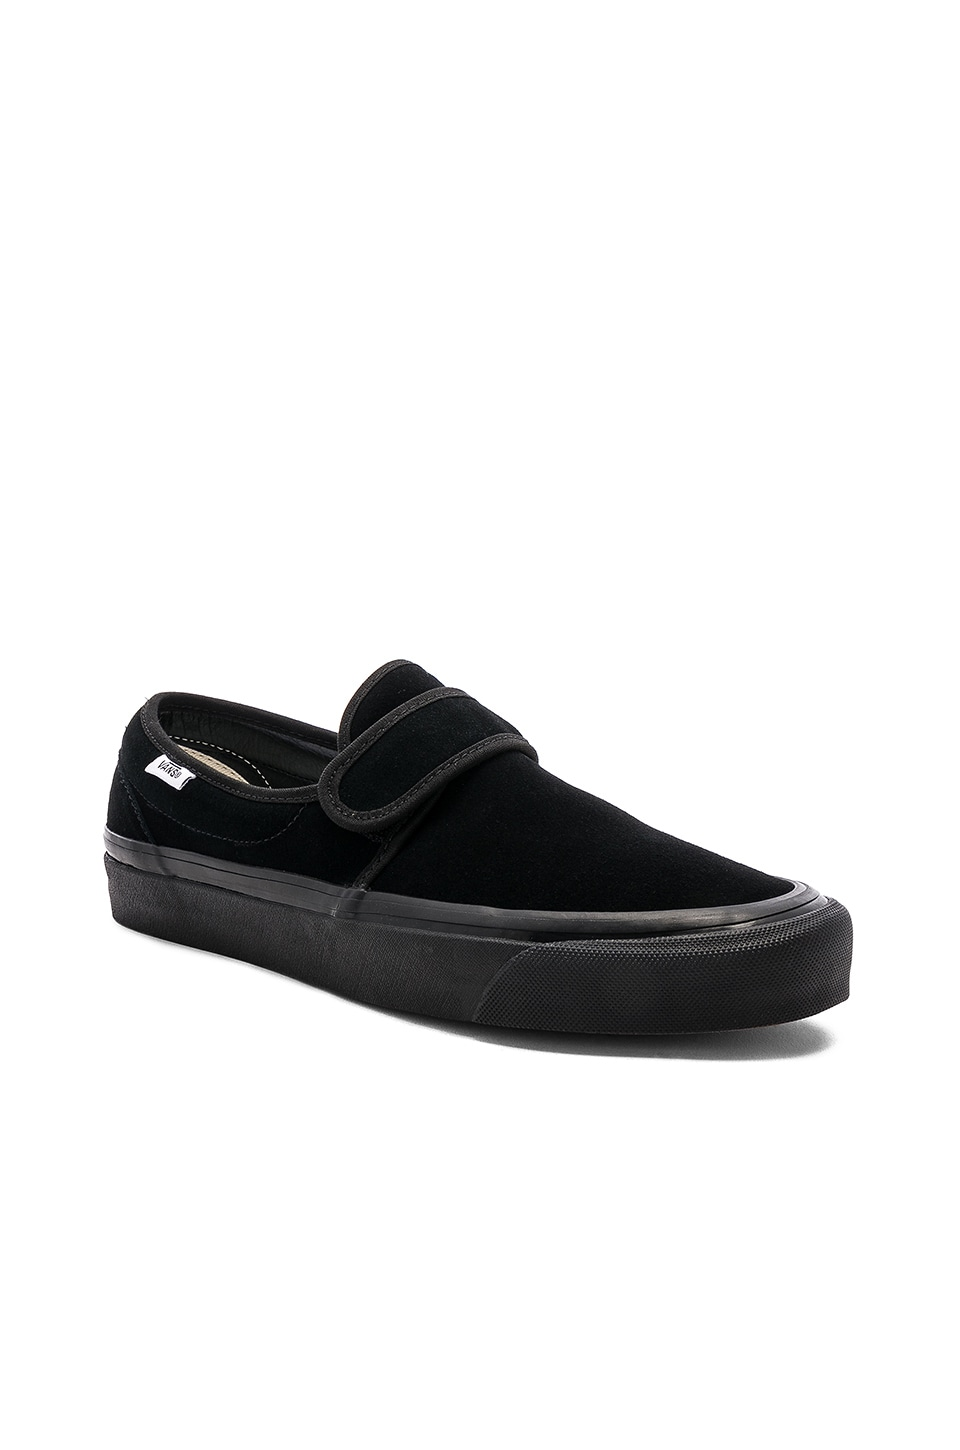 VANS Anaheim Factory Touch Strap Slip-On Sneakers In Black